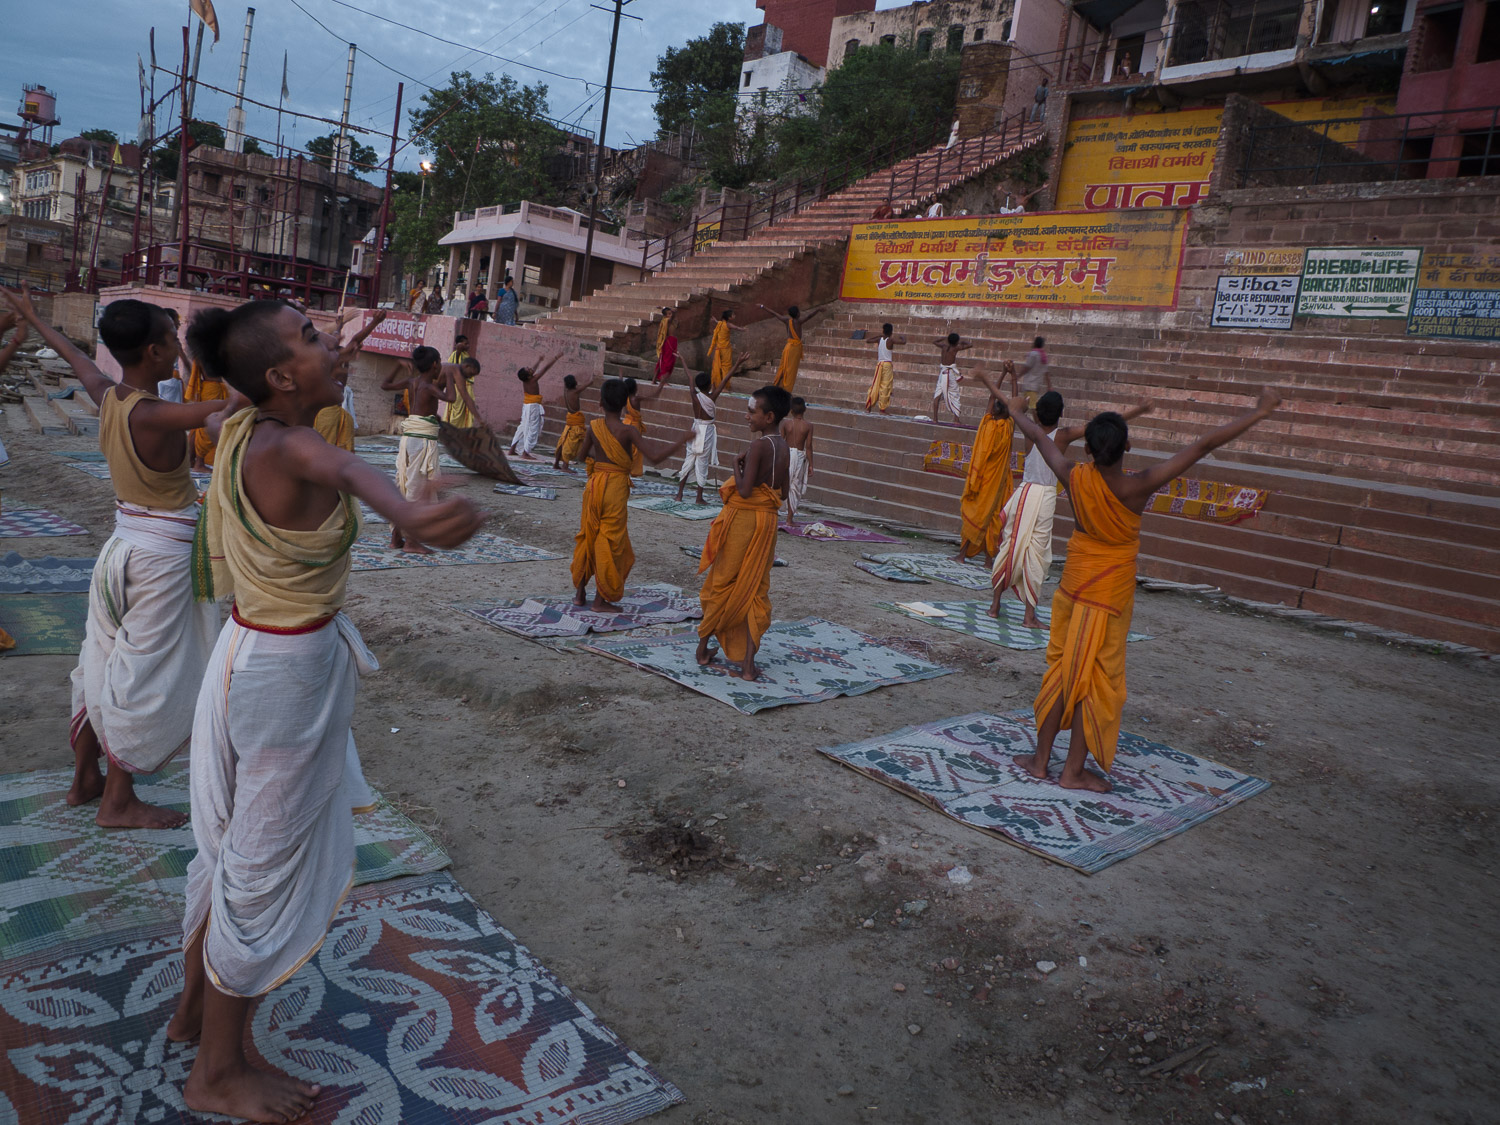 Hindu's pratice yoga on the banks of the river Ganges during sunrise in Varanasi, India